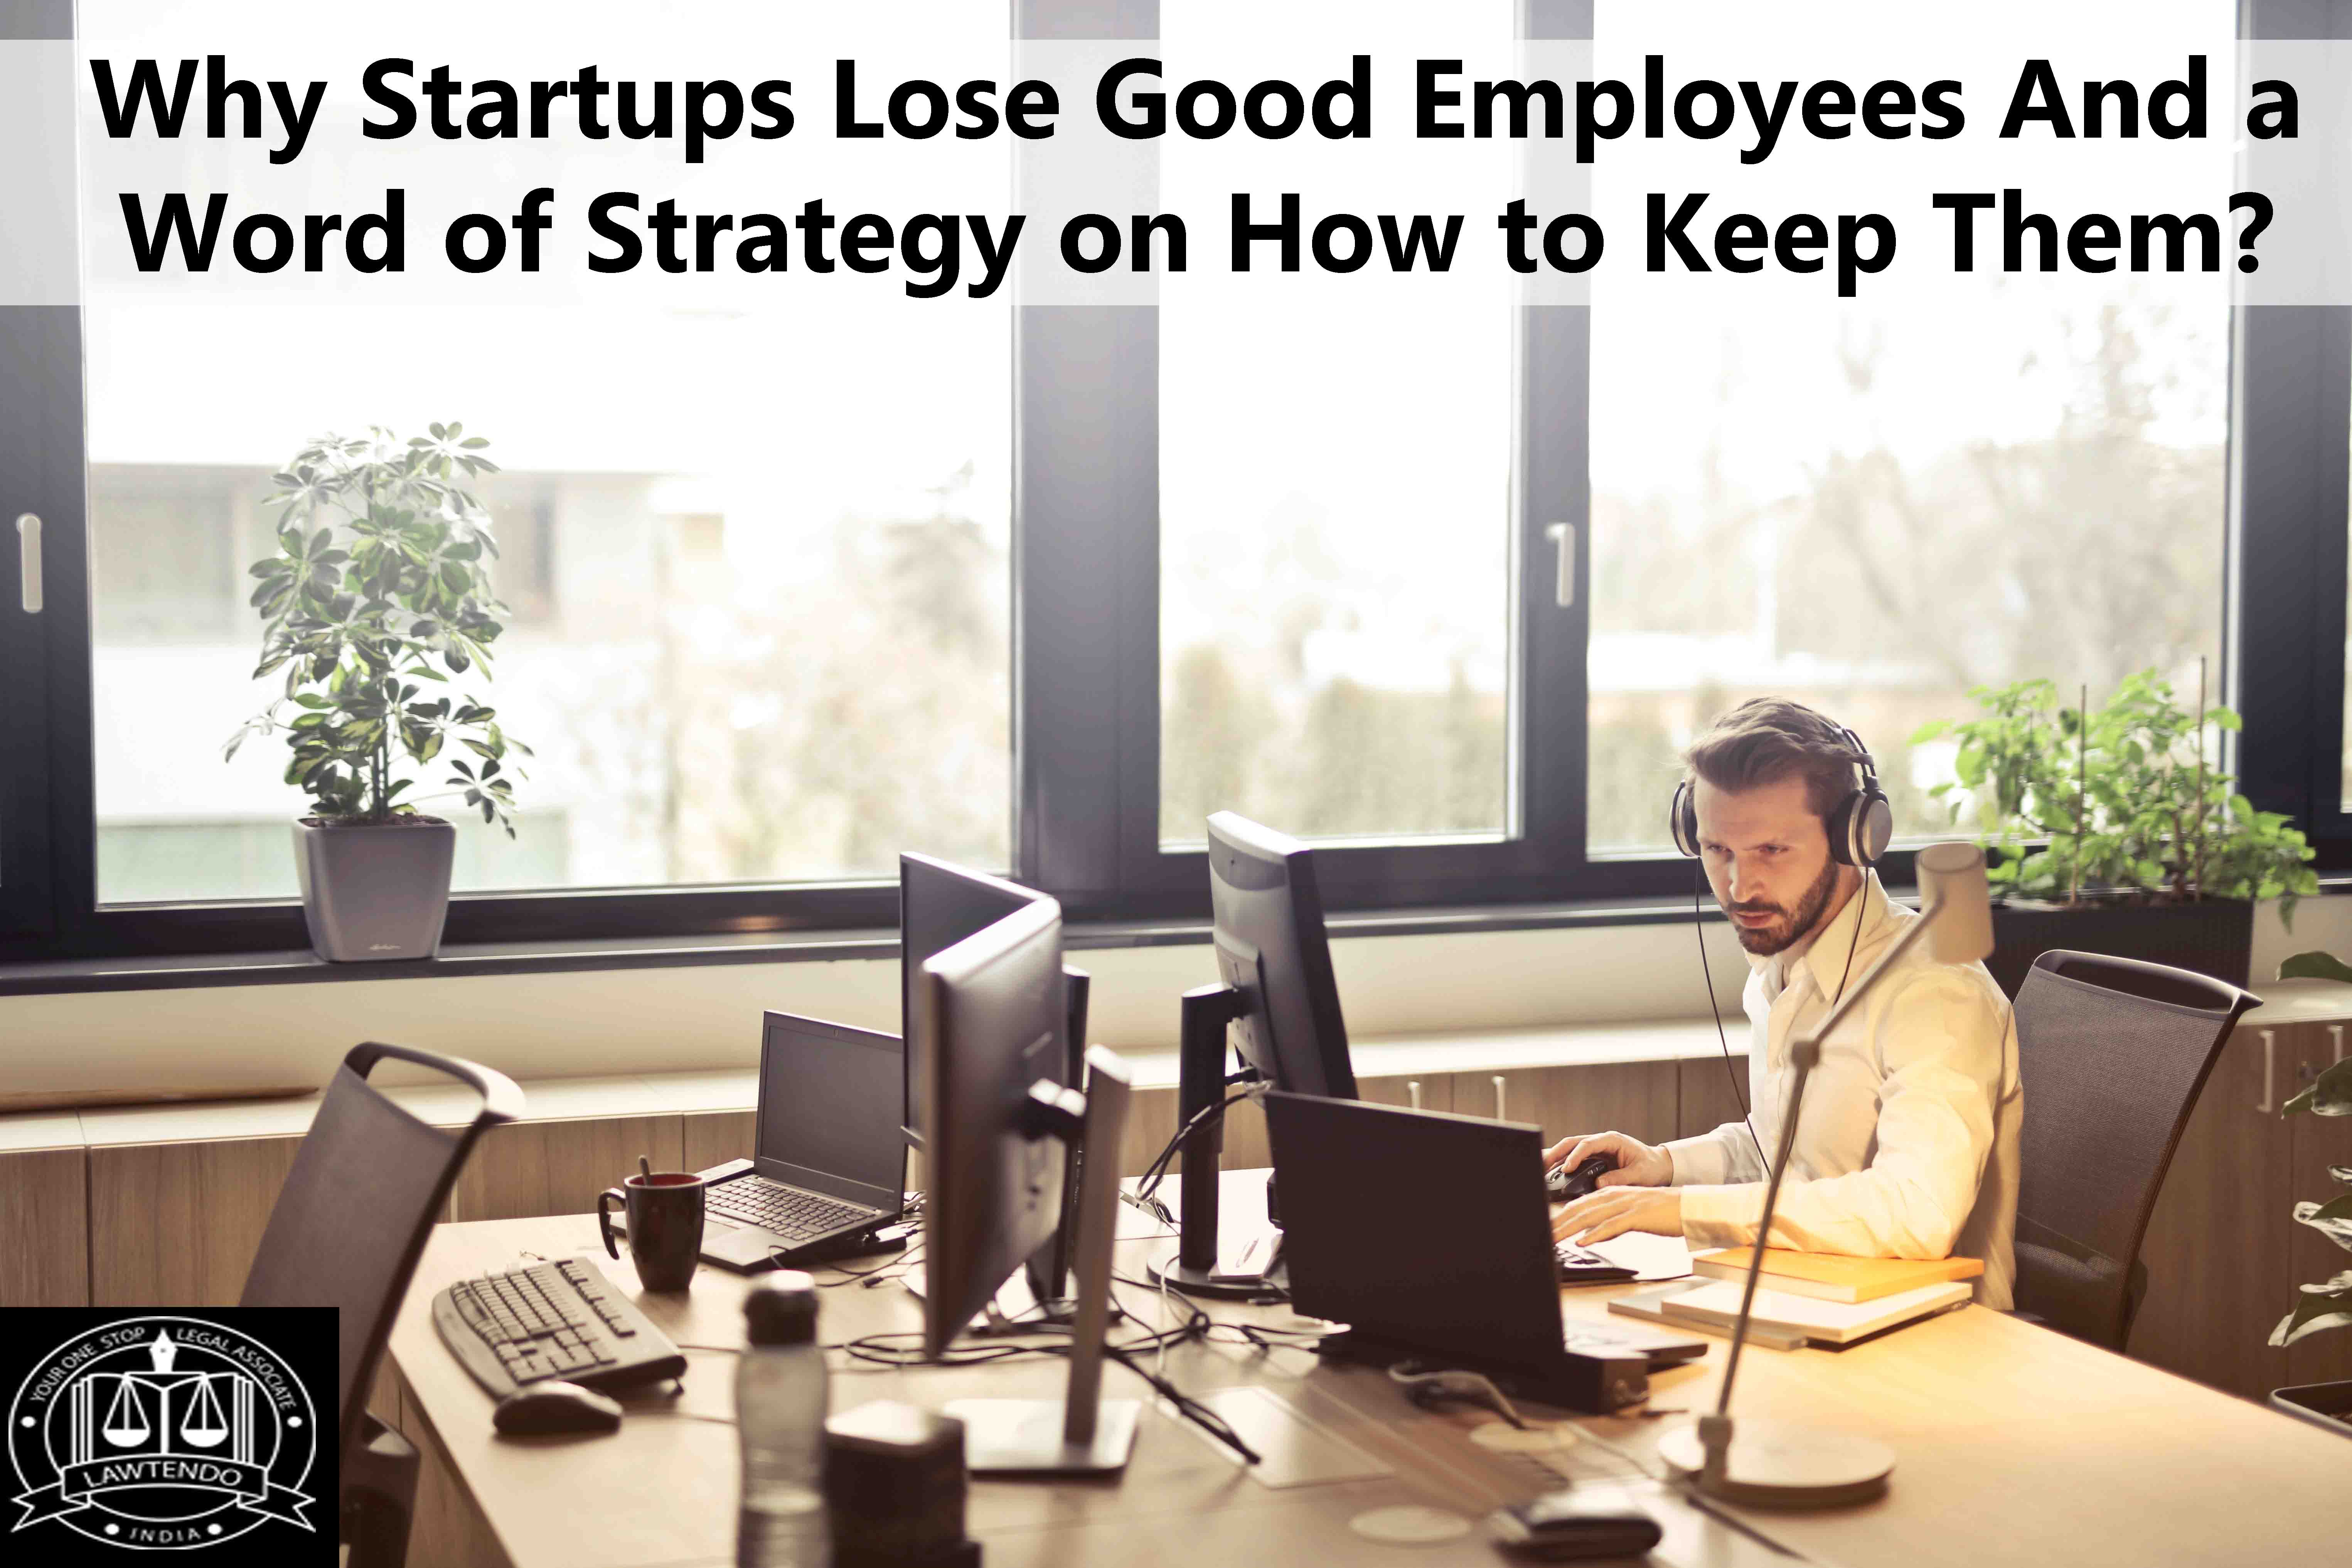 Why startups lose good employees and a word of strategy on how to keep them